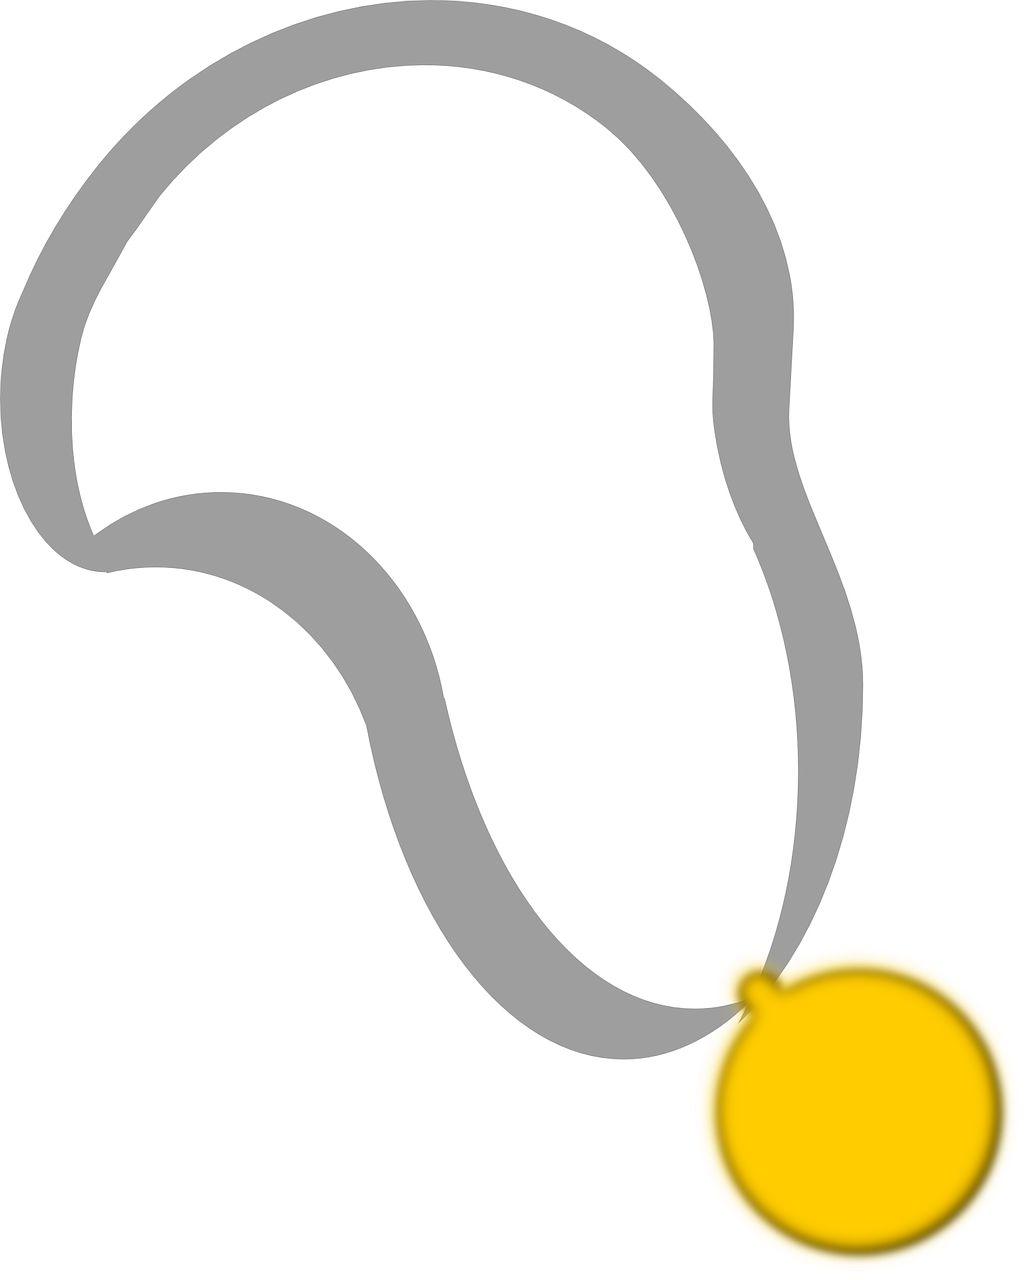 Medal Ribbon Award Winner